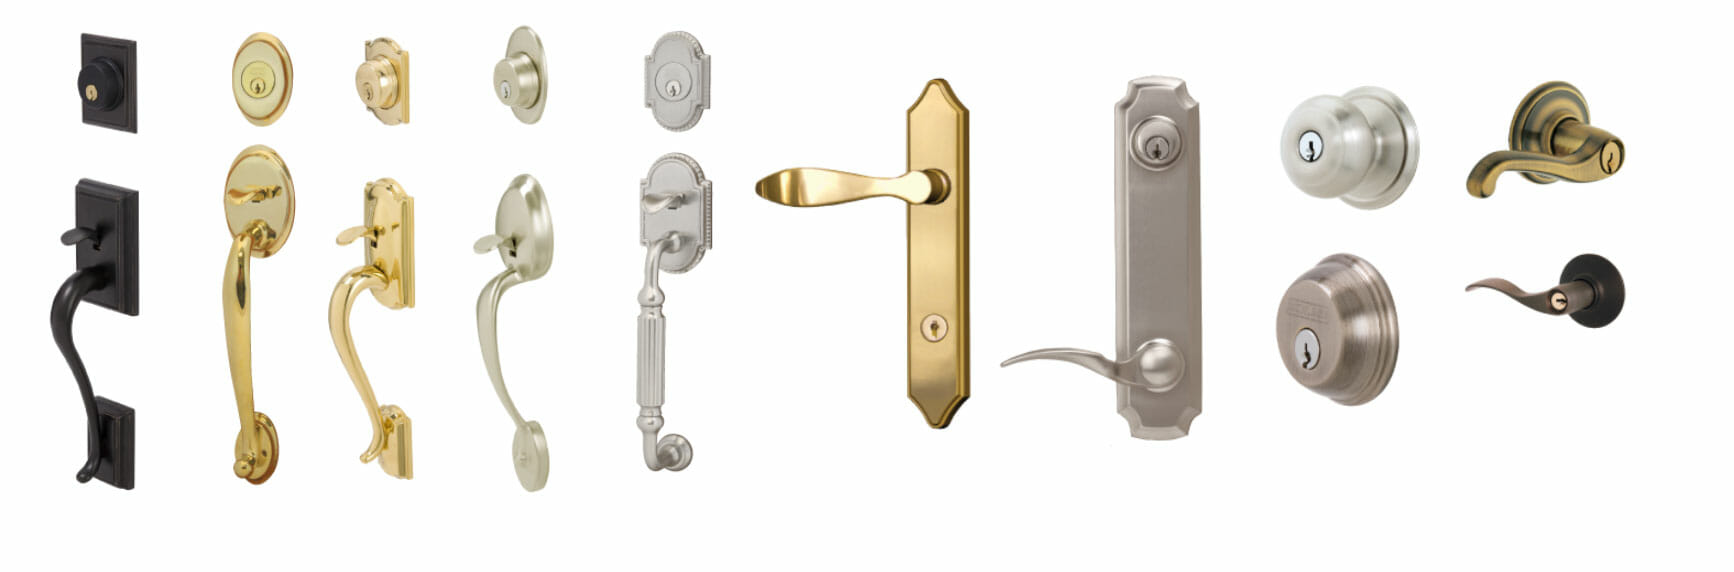 Entry Door handle and locks options